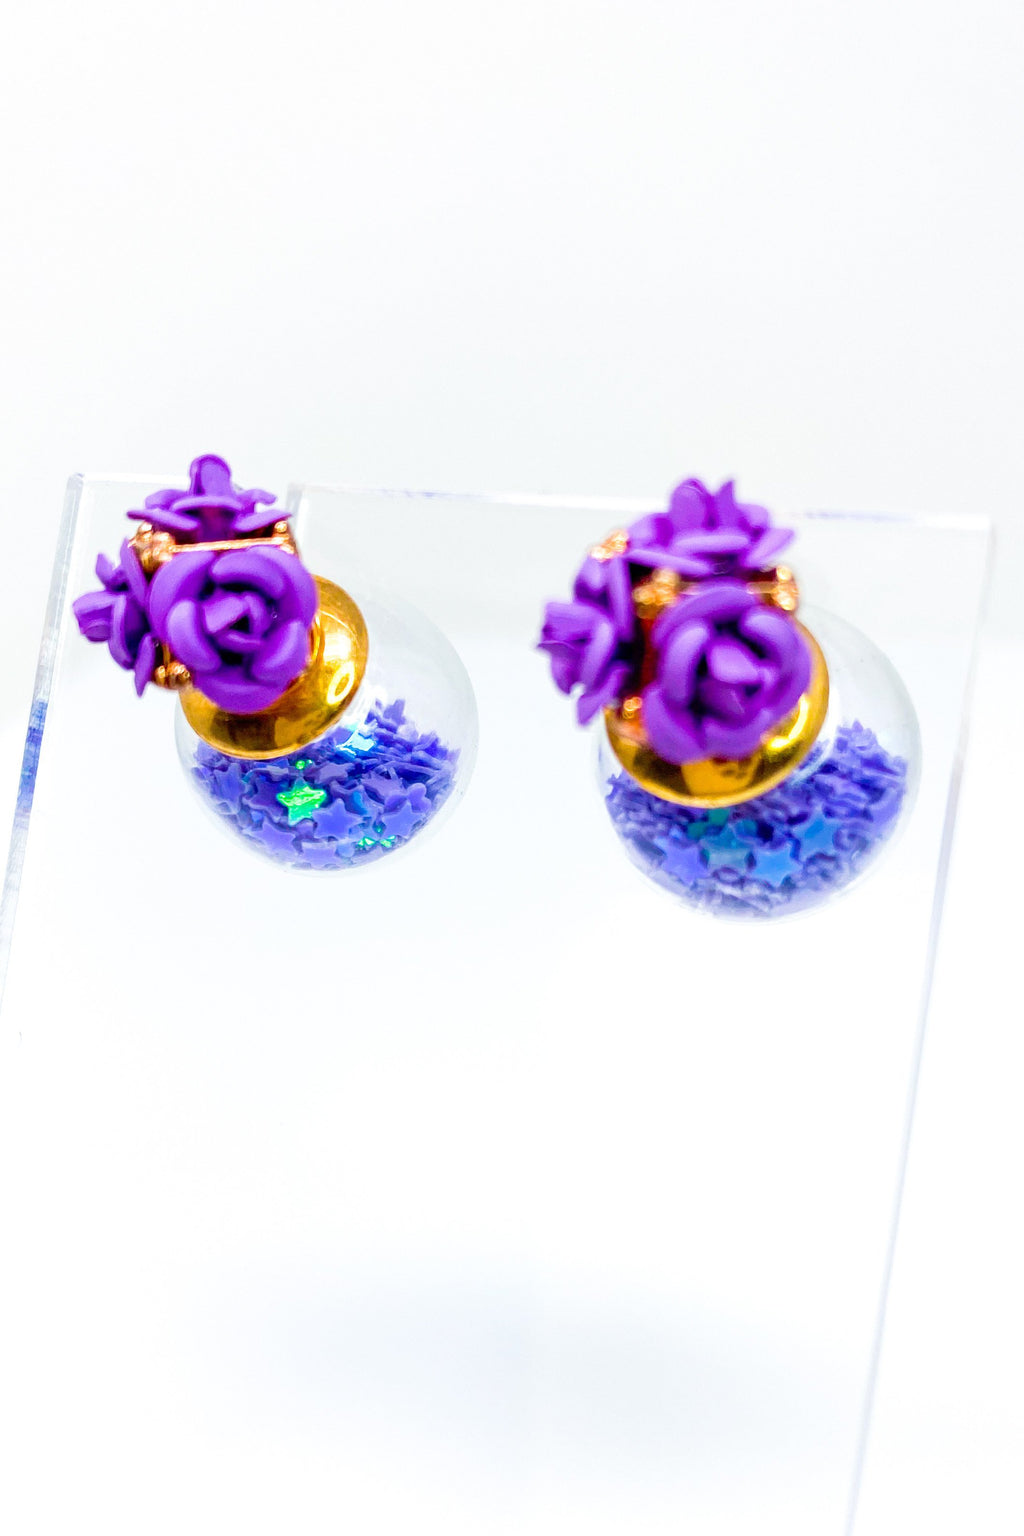 Star Blossom Studs - EarringEverything.com - Studs - earrings - fashion - fashion_accessories